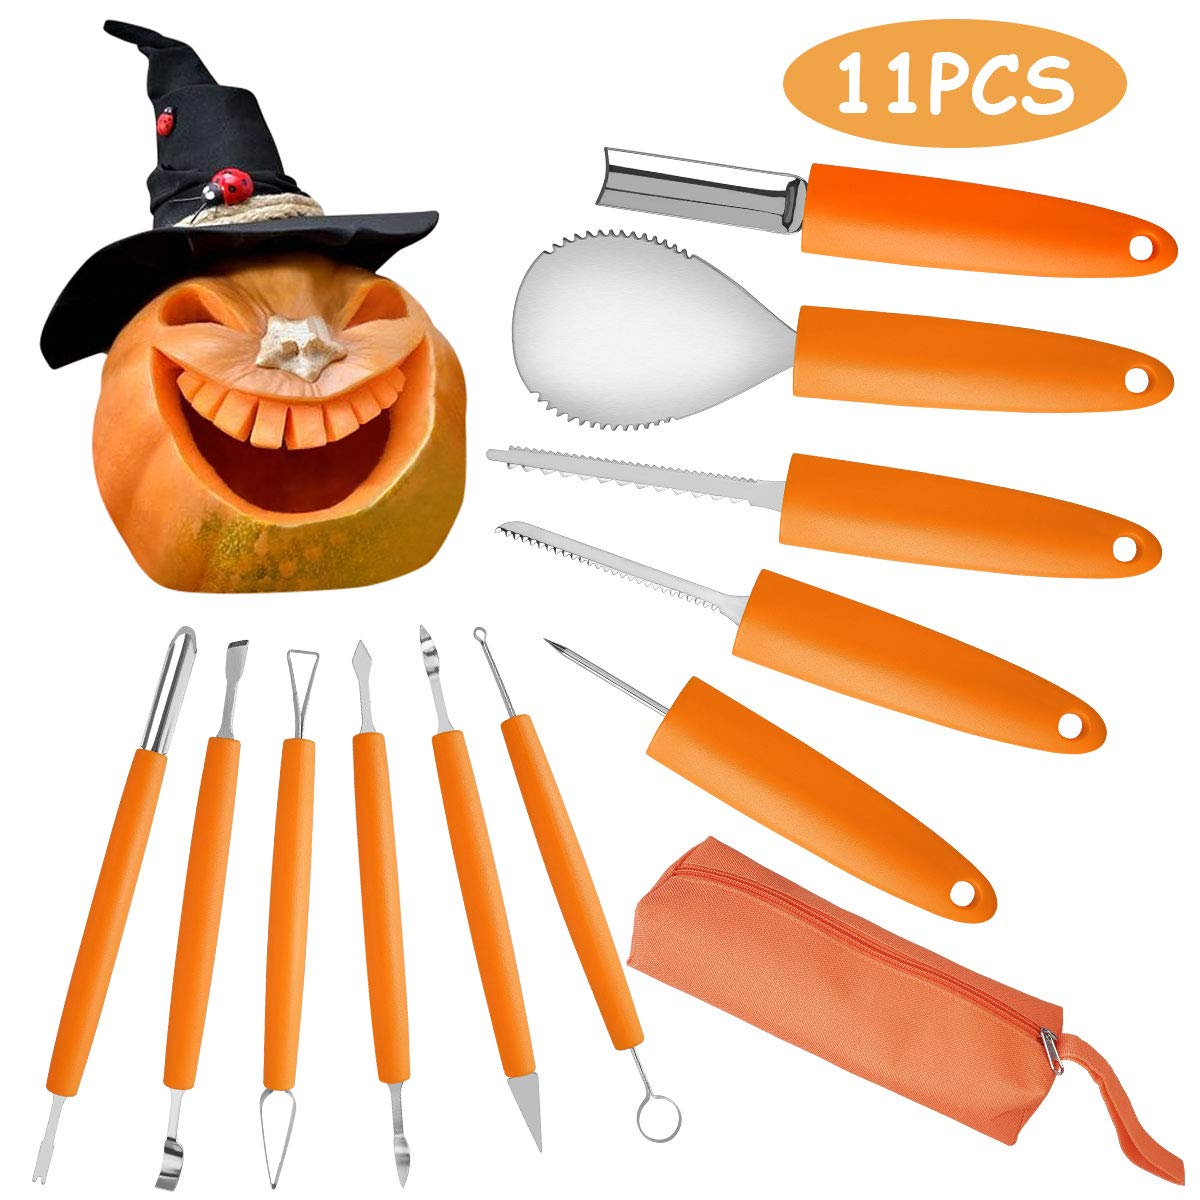 11PCS Halloween Pumpkin Carving Kit, VOIMAKAS Heavy Duty Stainless Steel Carving Tools Set with Storage Carrying Bag for Halloween Decorations, DIY Cutting Tools Carving Knife for Pumpkin by VOIMAKAS